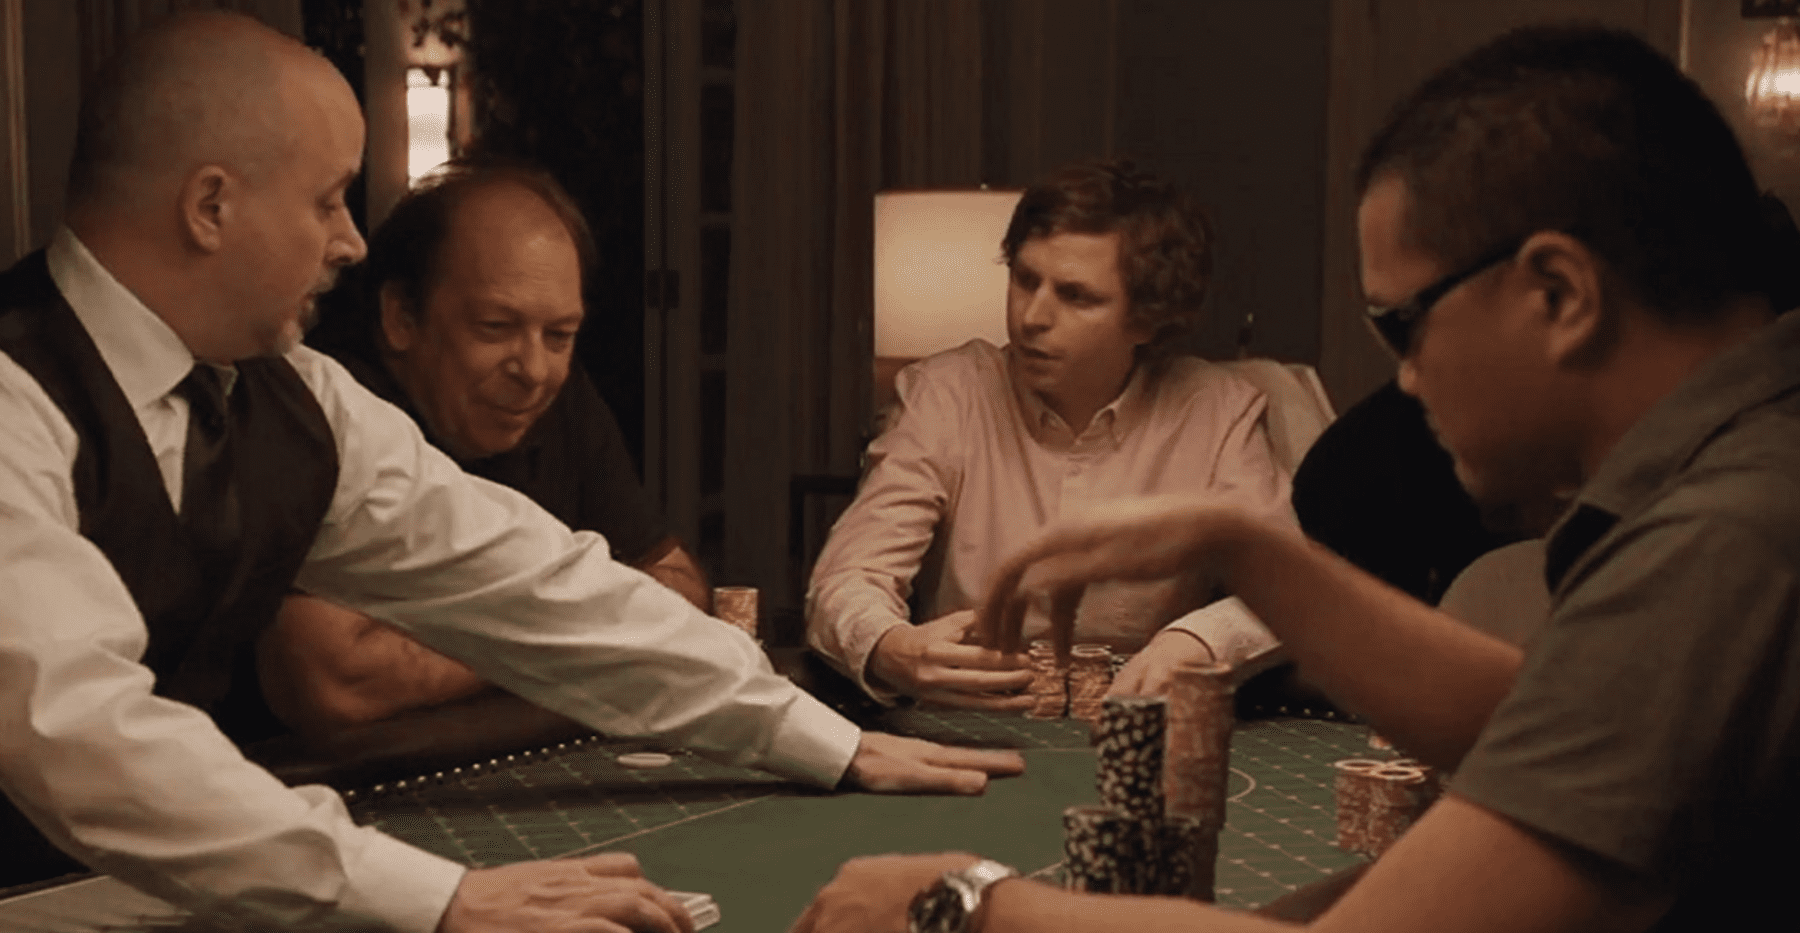 Player X and others, at the poker table